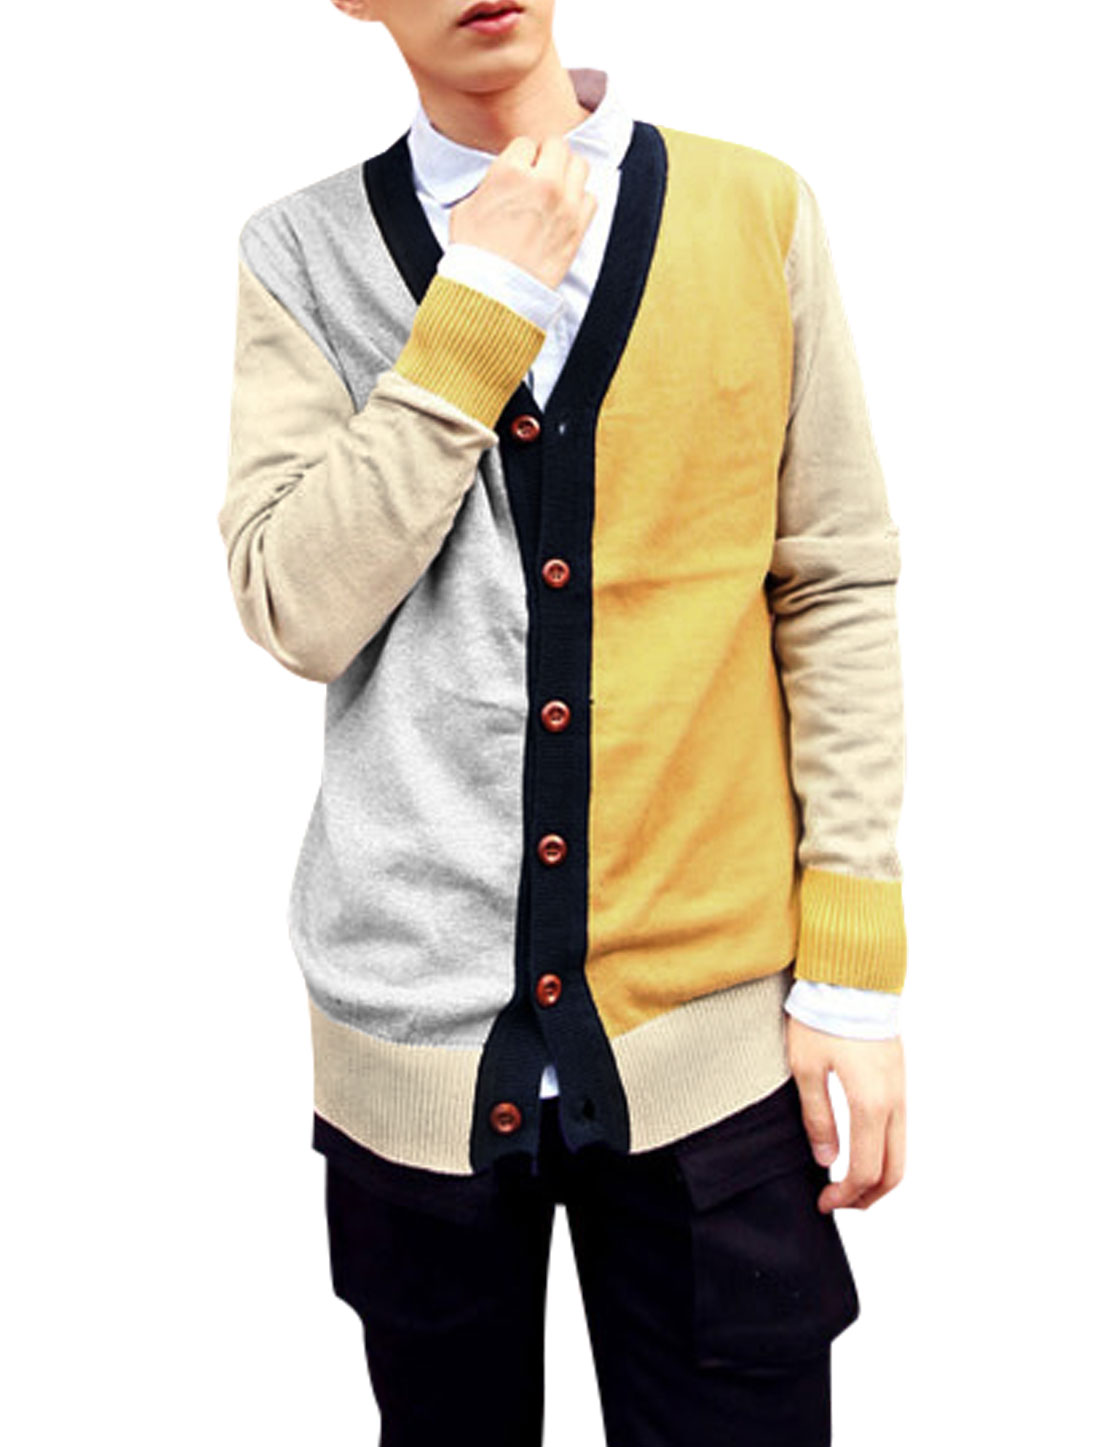 Men V Neck Contrast Color Button Closed Knit Cardigan Yellow Gray M